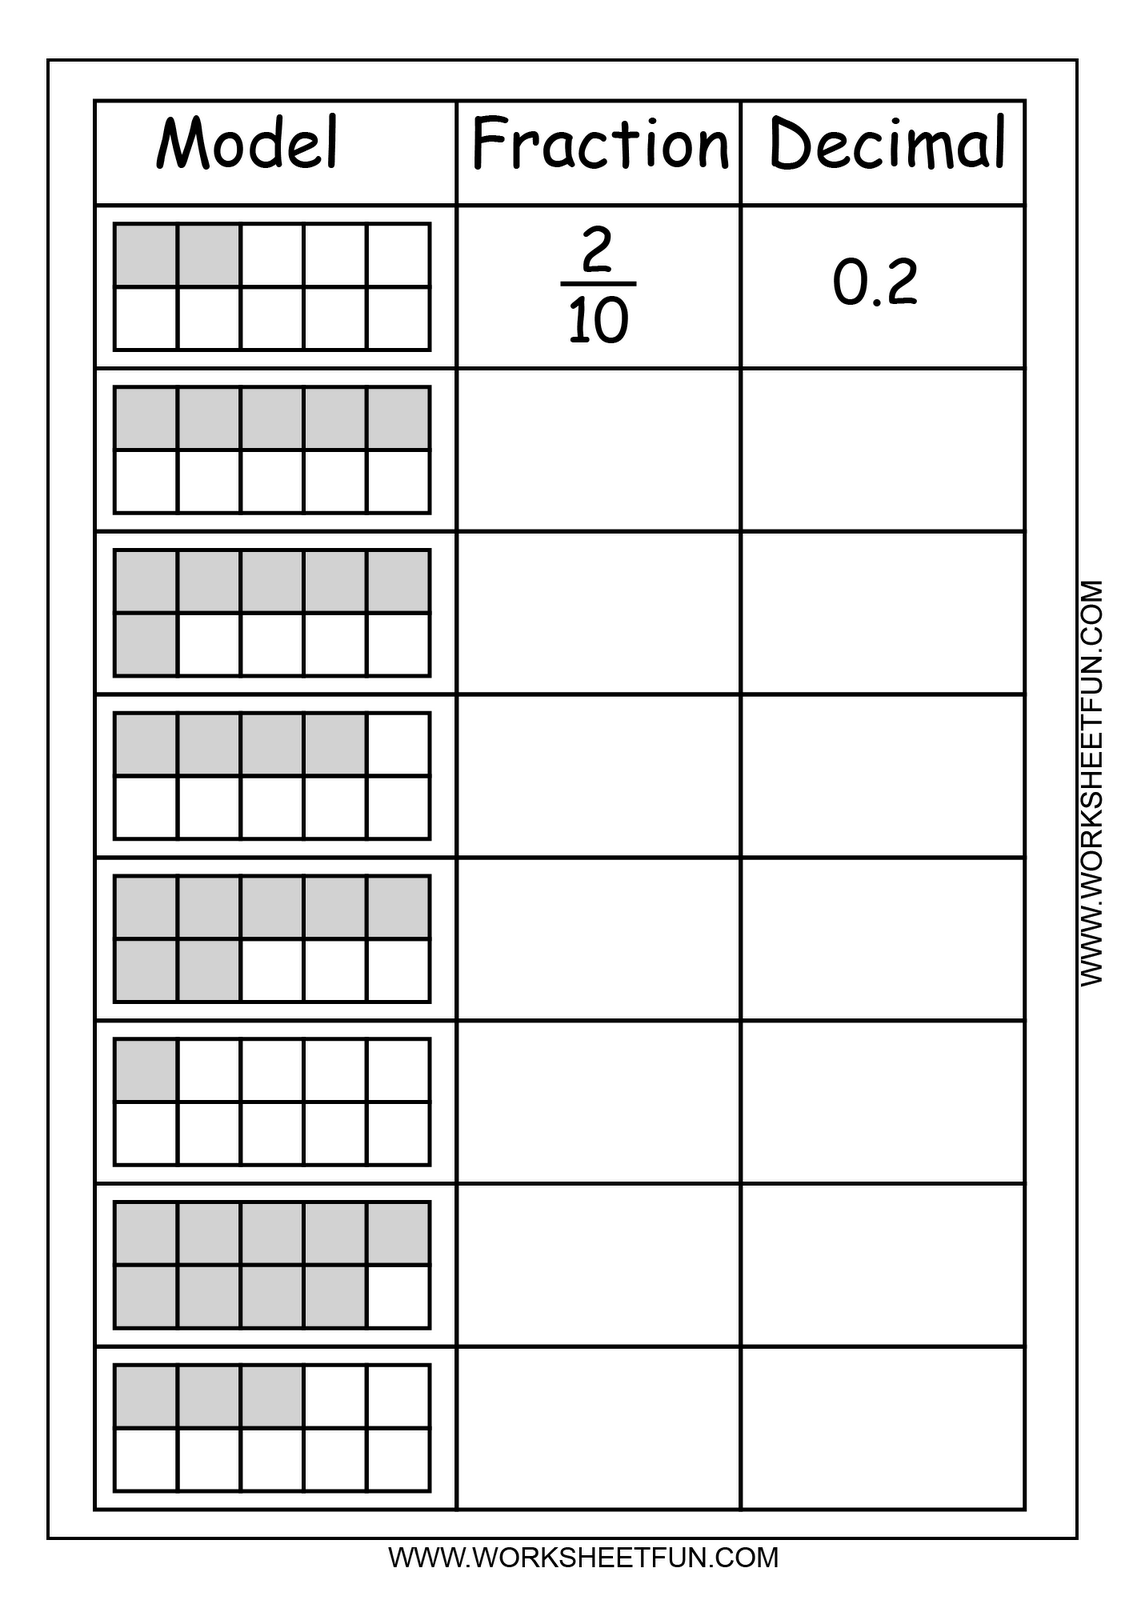 Worksheetfun FREE PRINTABLE WORKSHEETS Math – Fractions to Decimal Worksheets